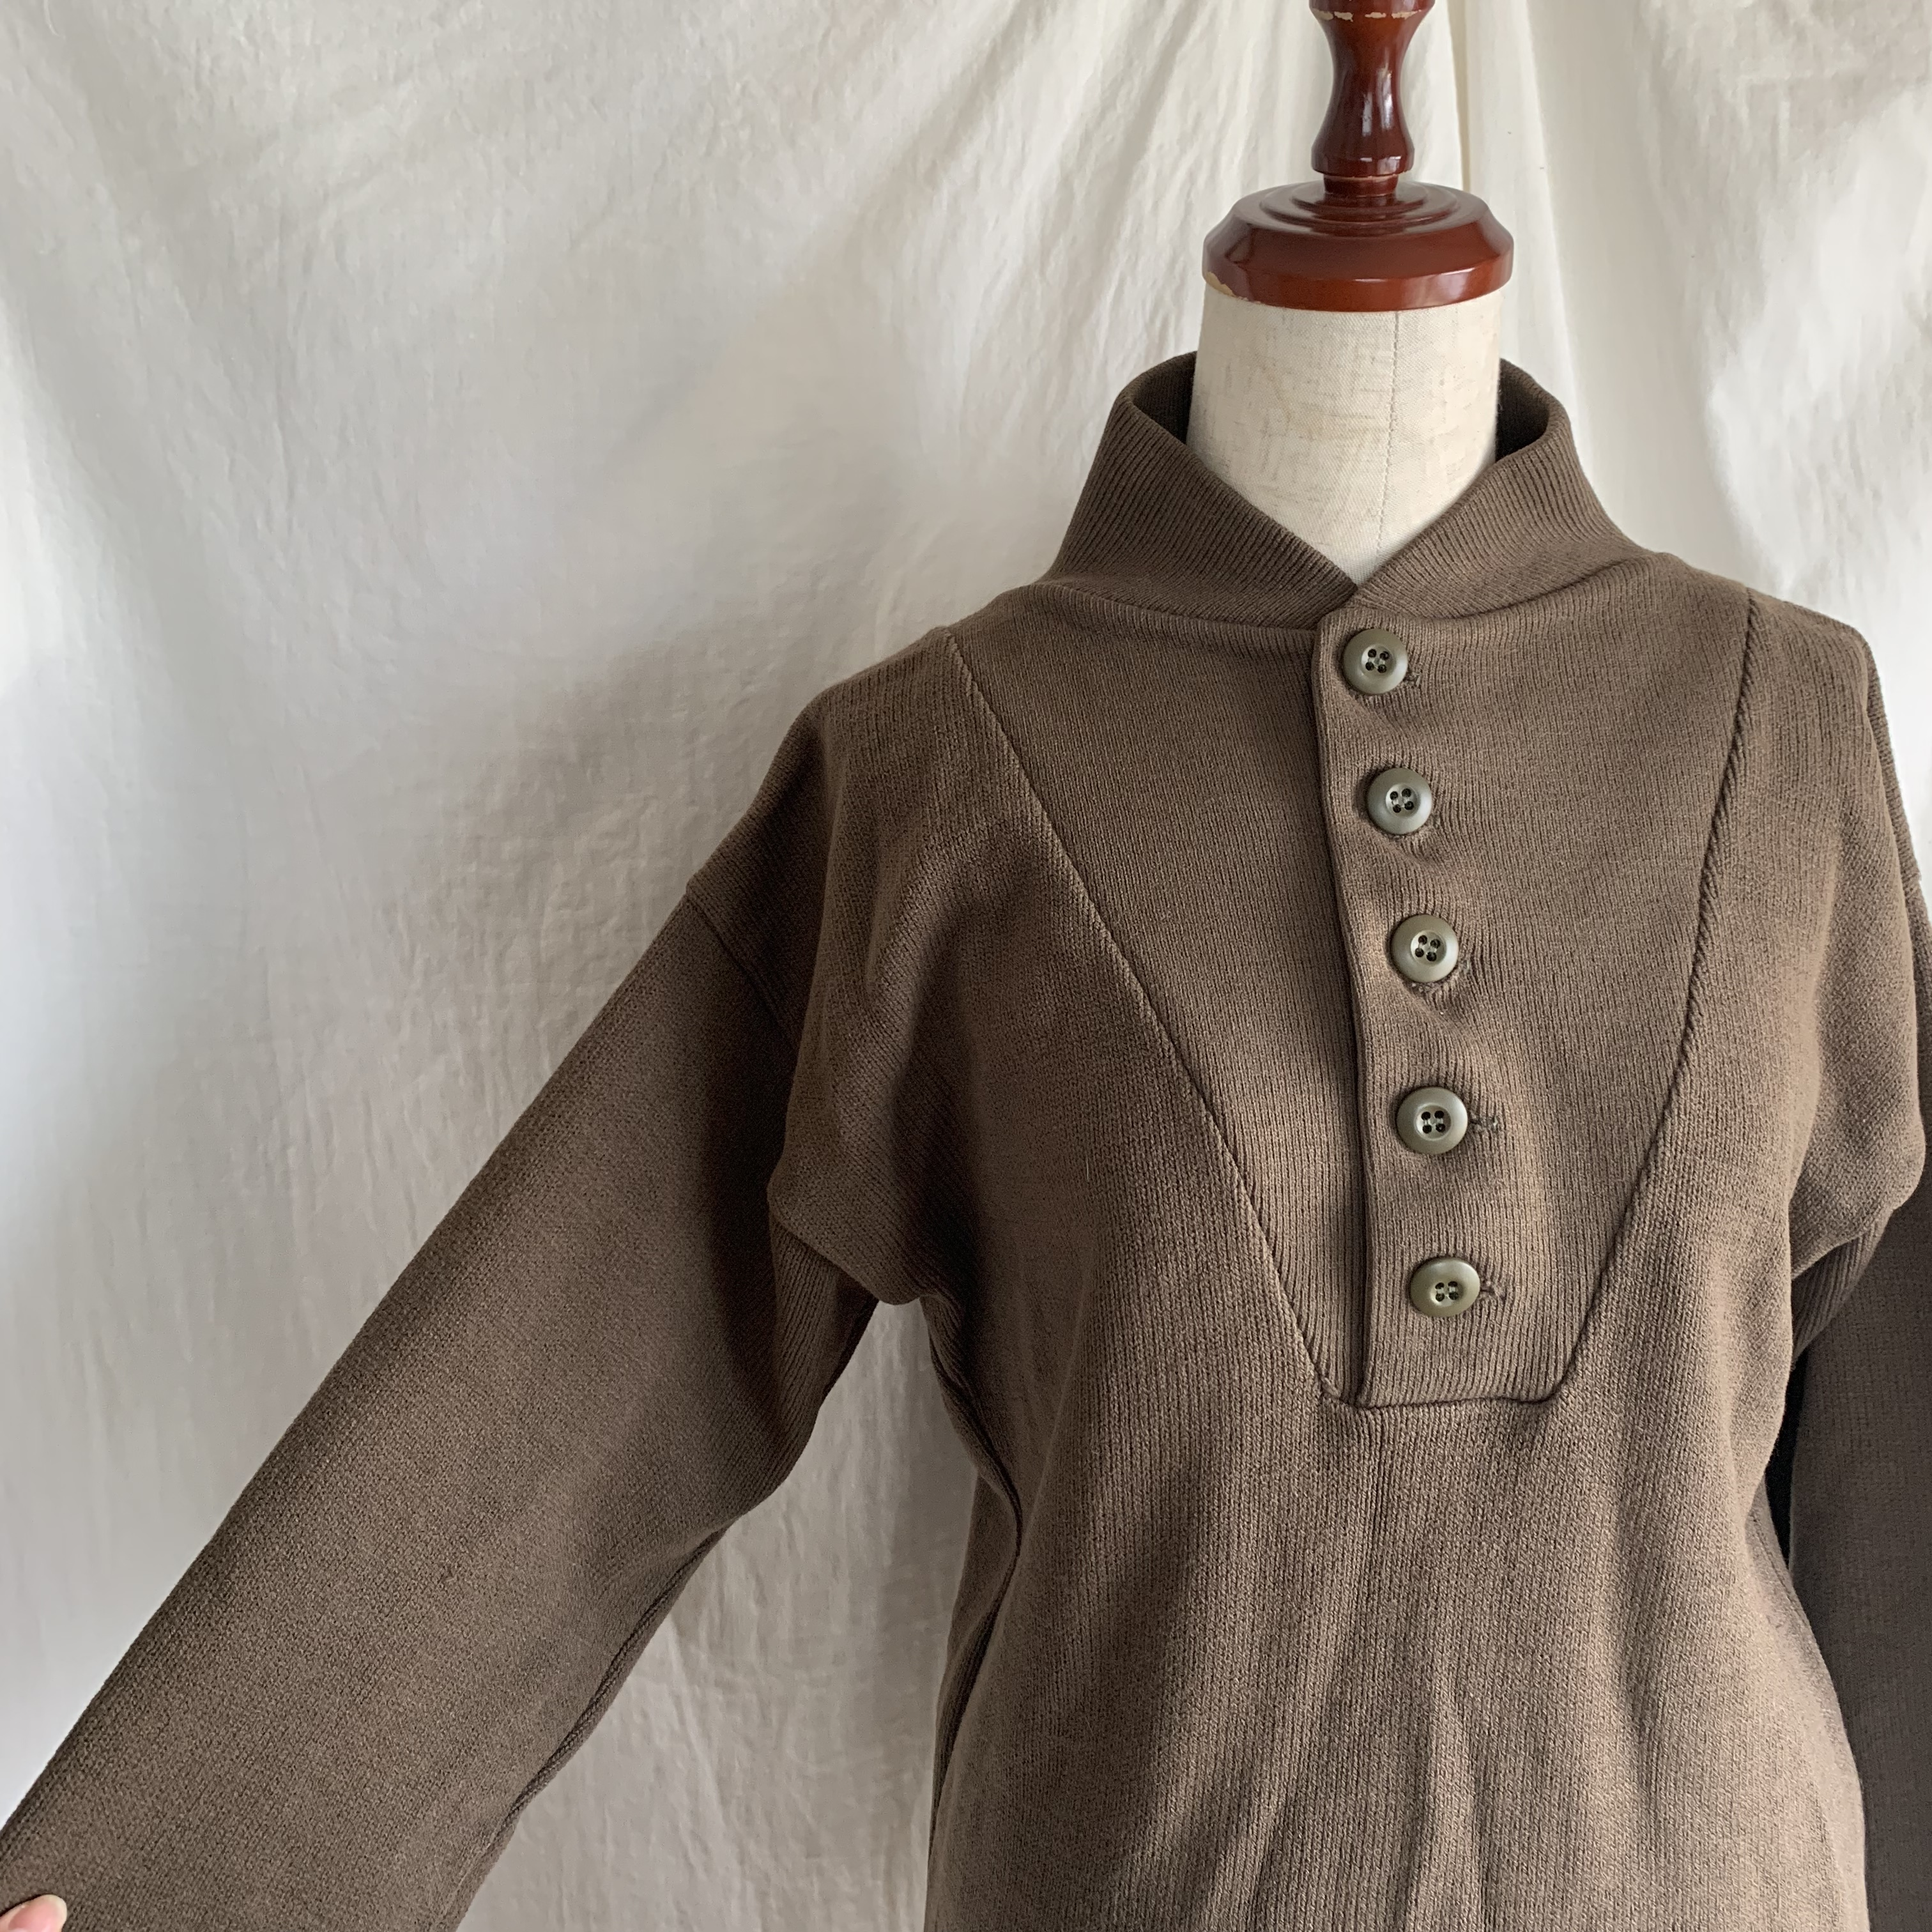 vintage military knit tops